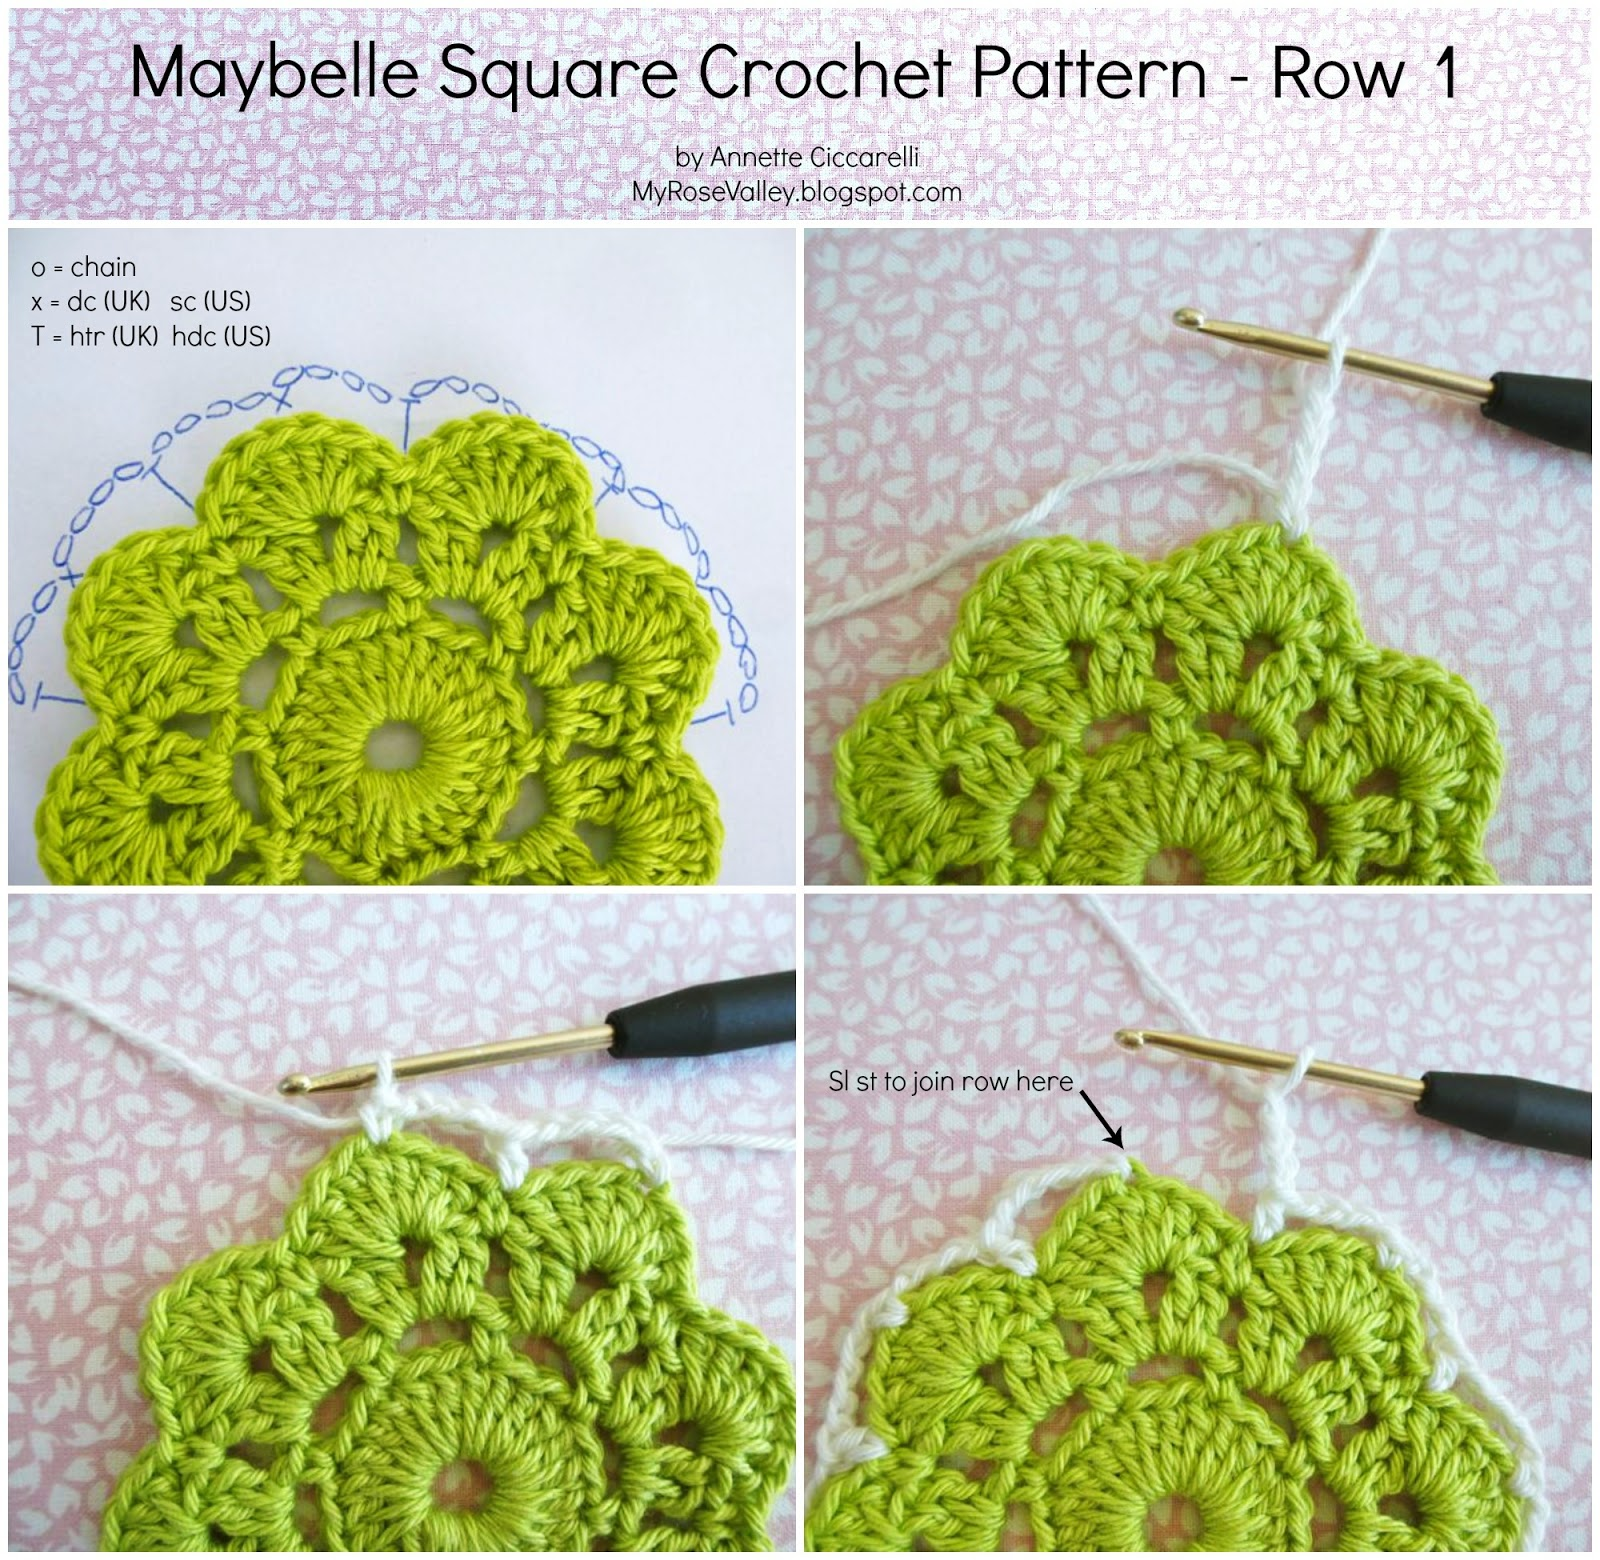 Crochet Stitches Joining Yarn : My Rose Valley: Maybelle Square Crochet Pattern